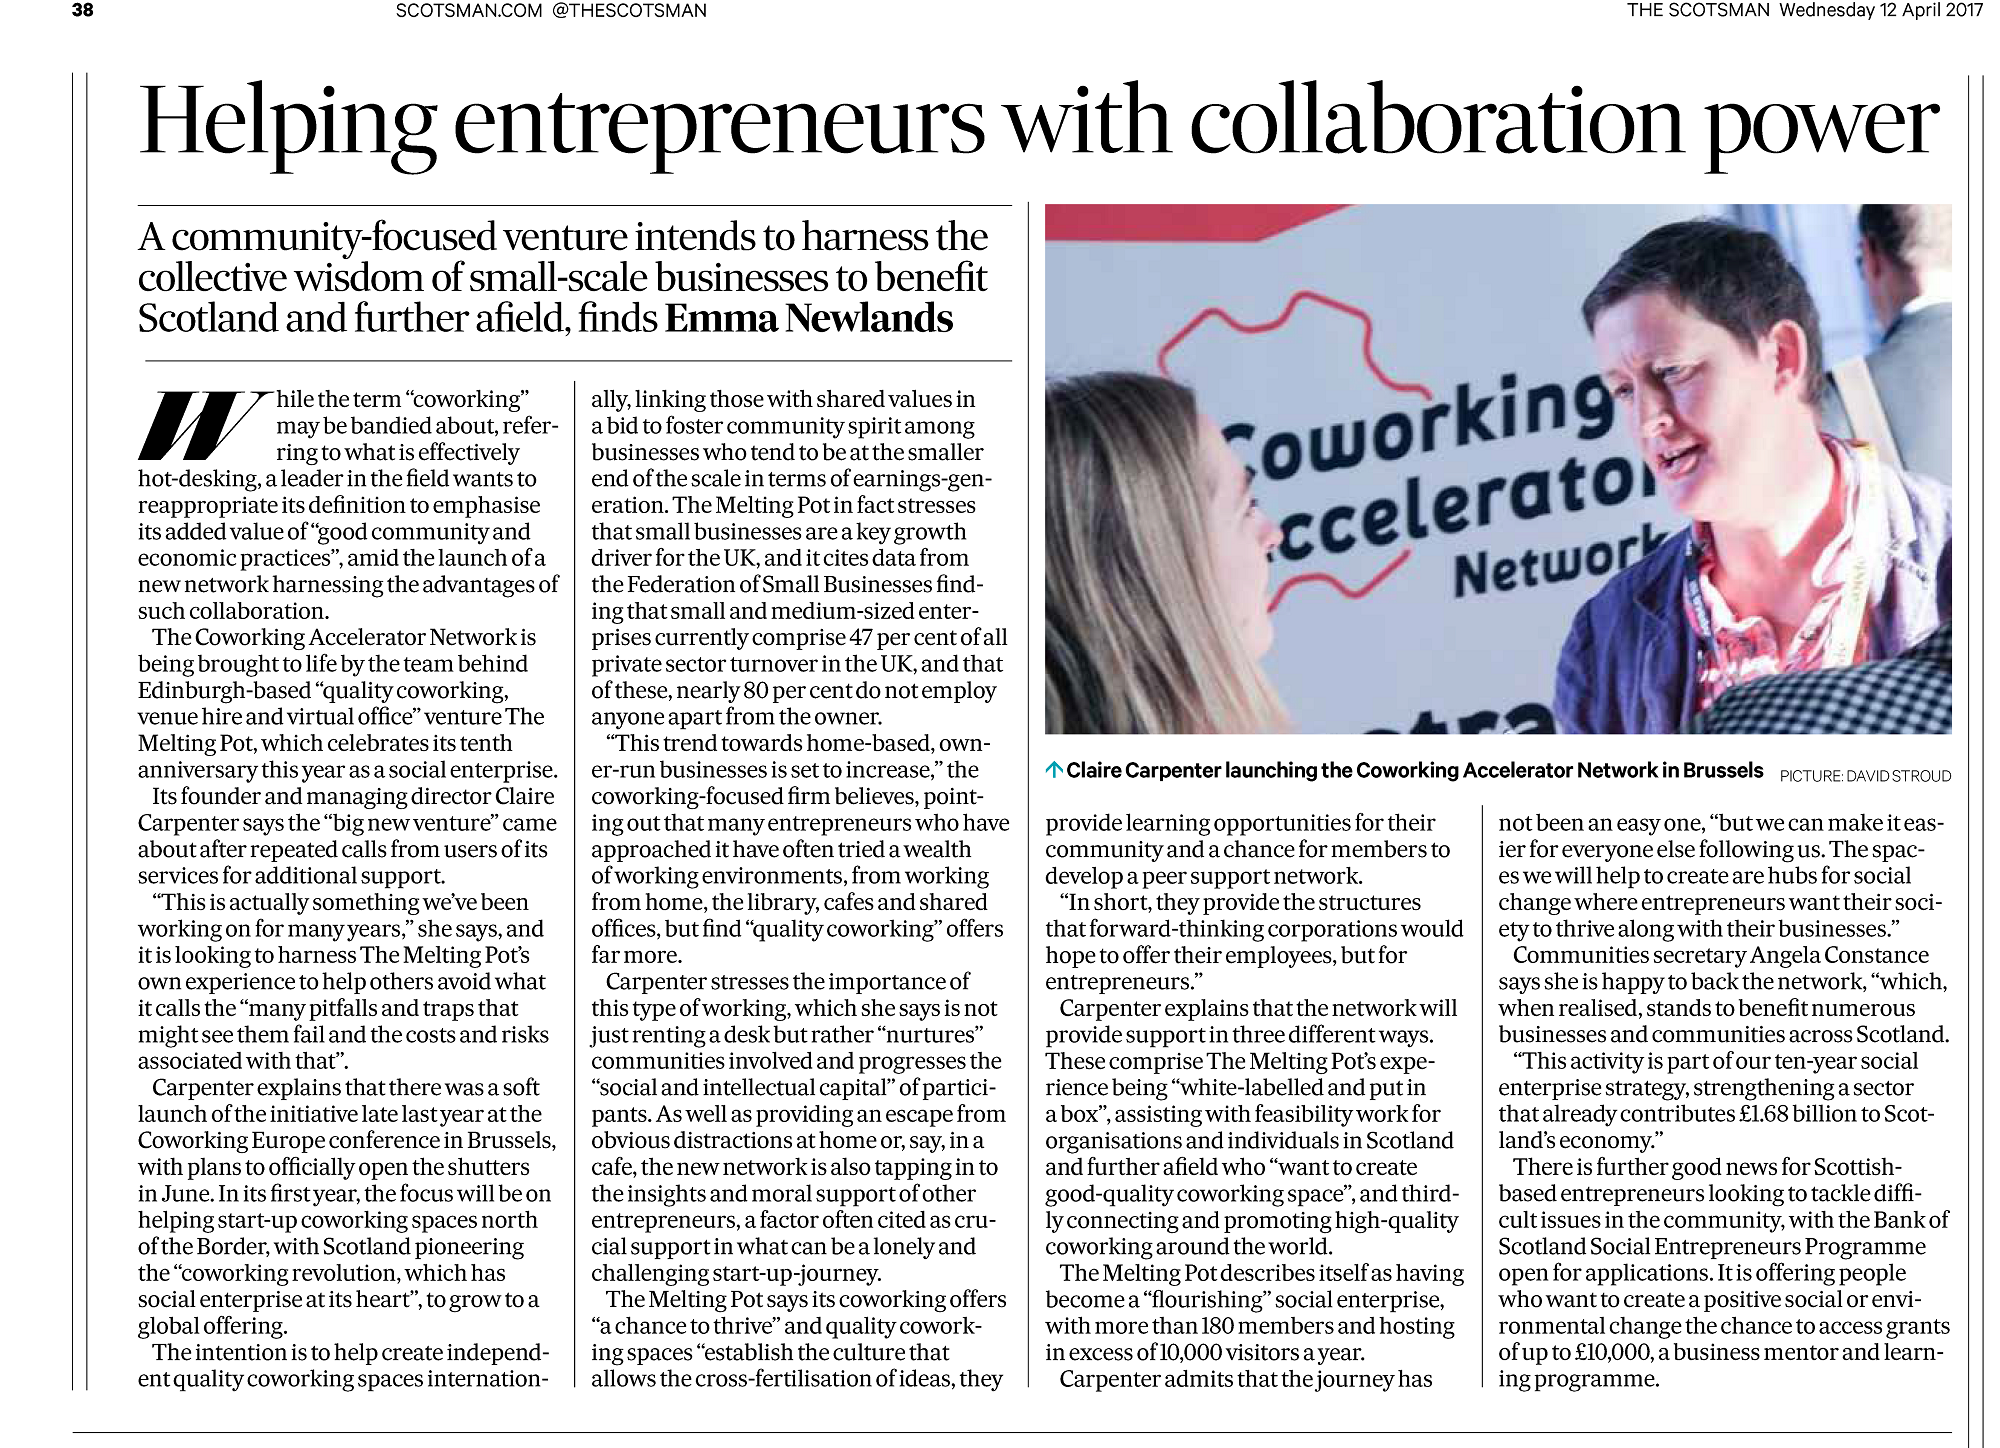 Helping entrepreneurs with collaboration power